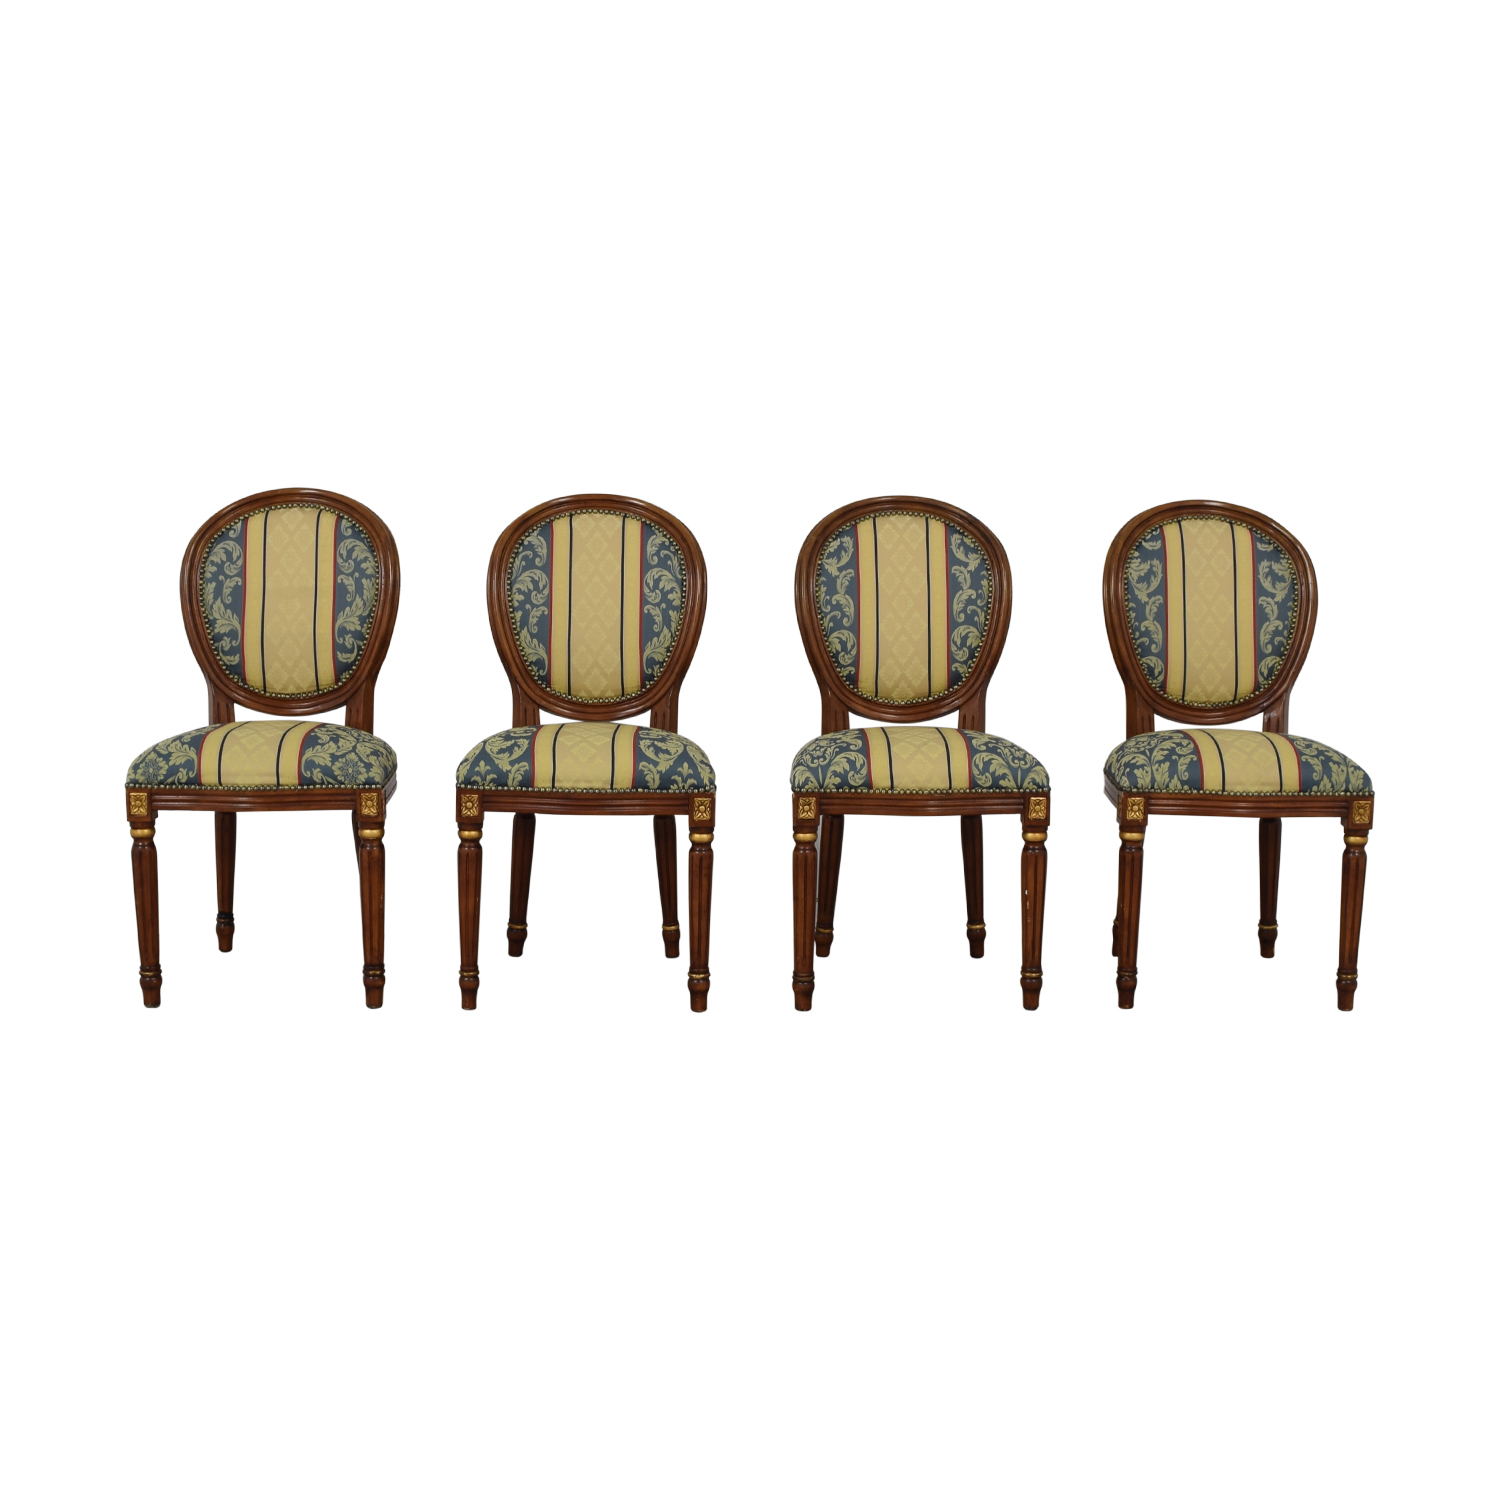 Vintage Upholstered Dining Chairs price